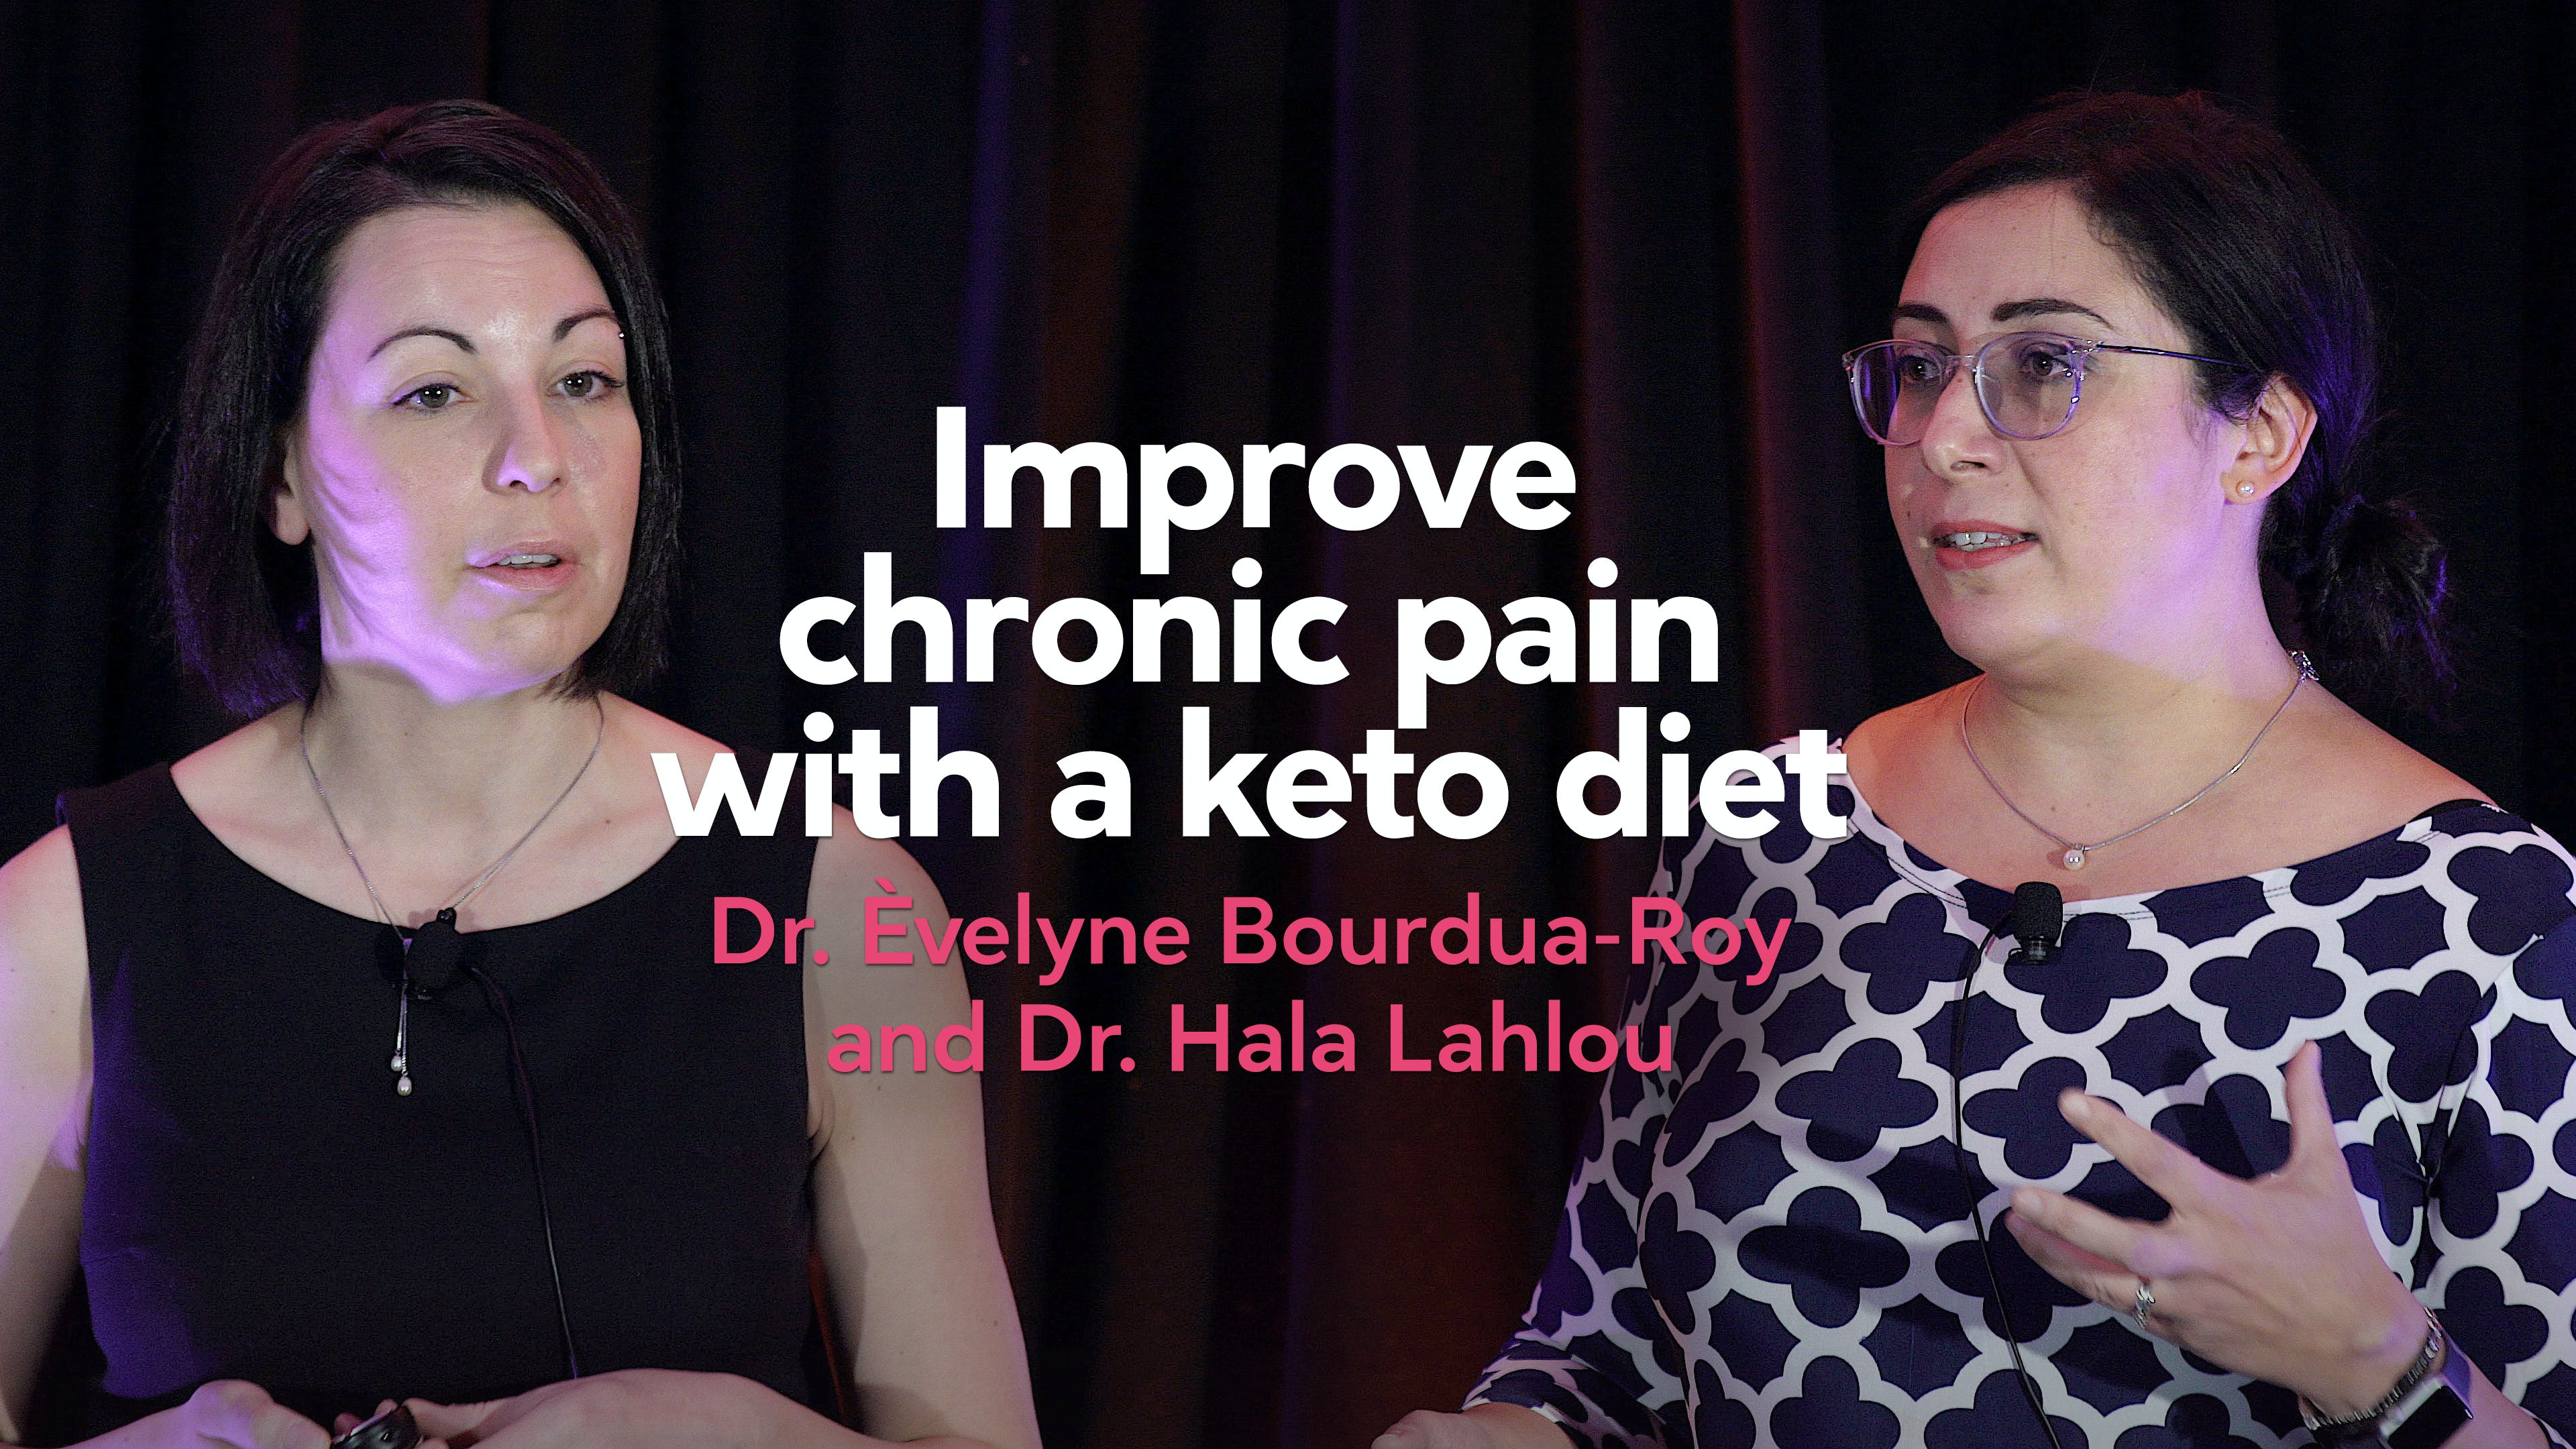 Improve chronic pain with a keto diet